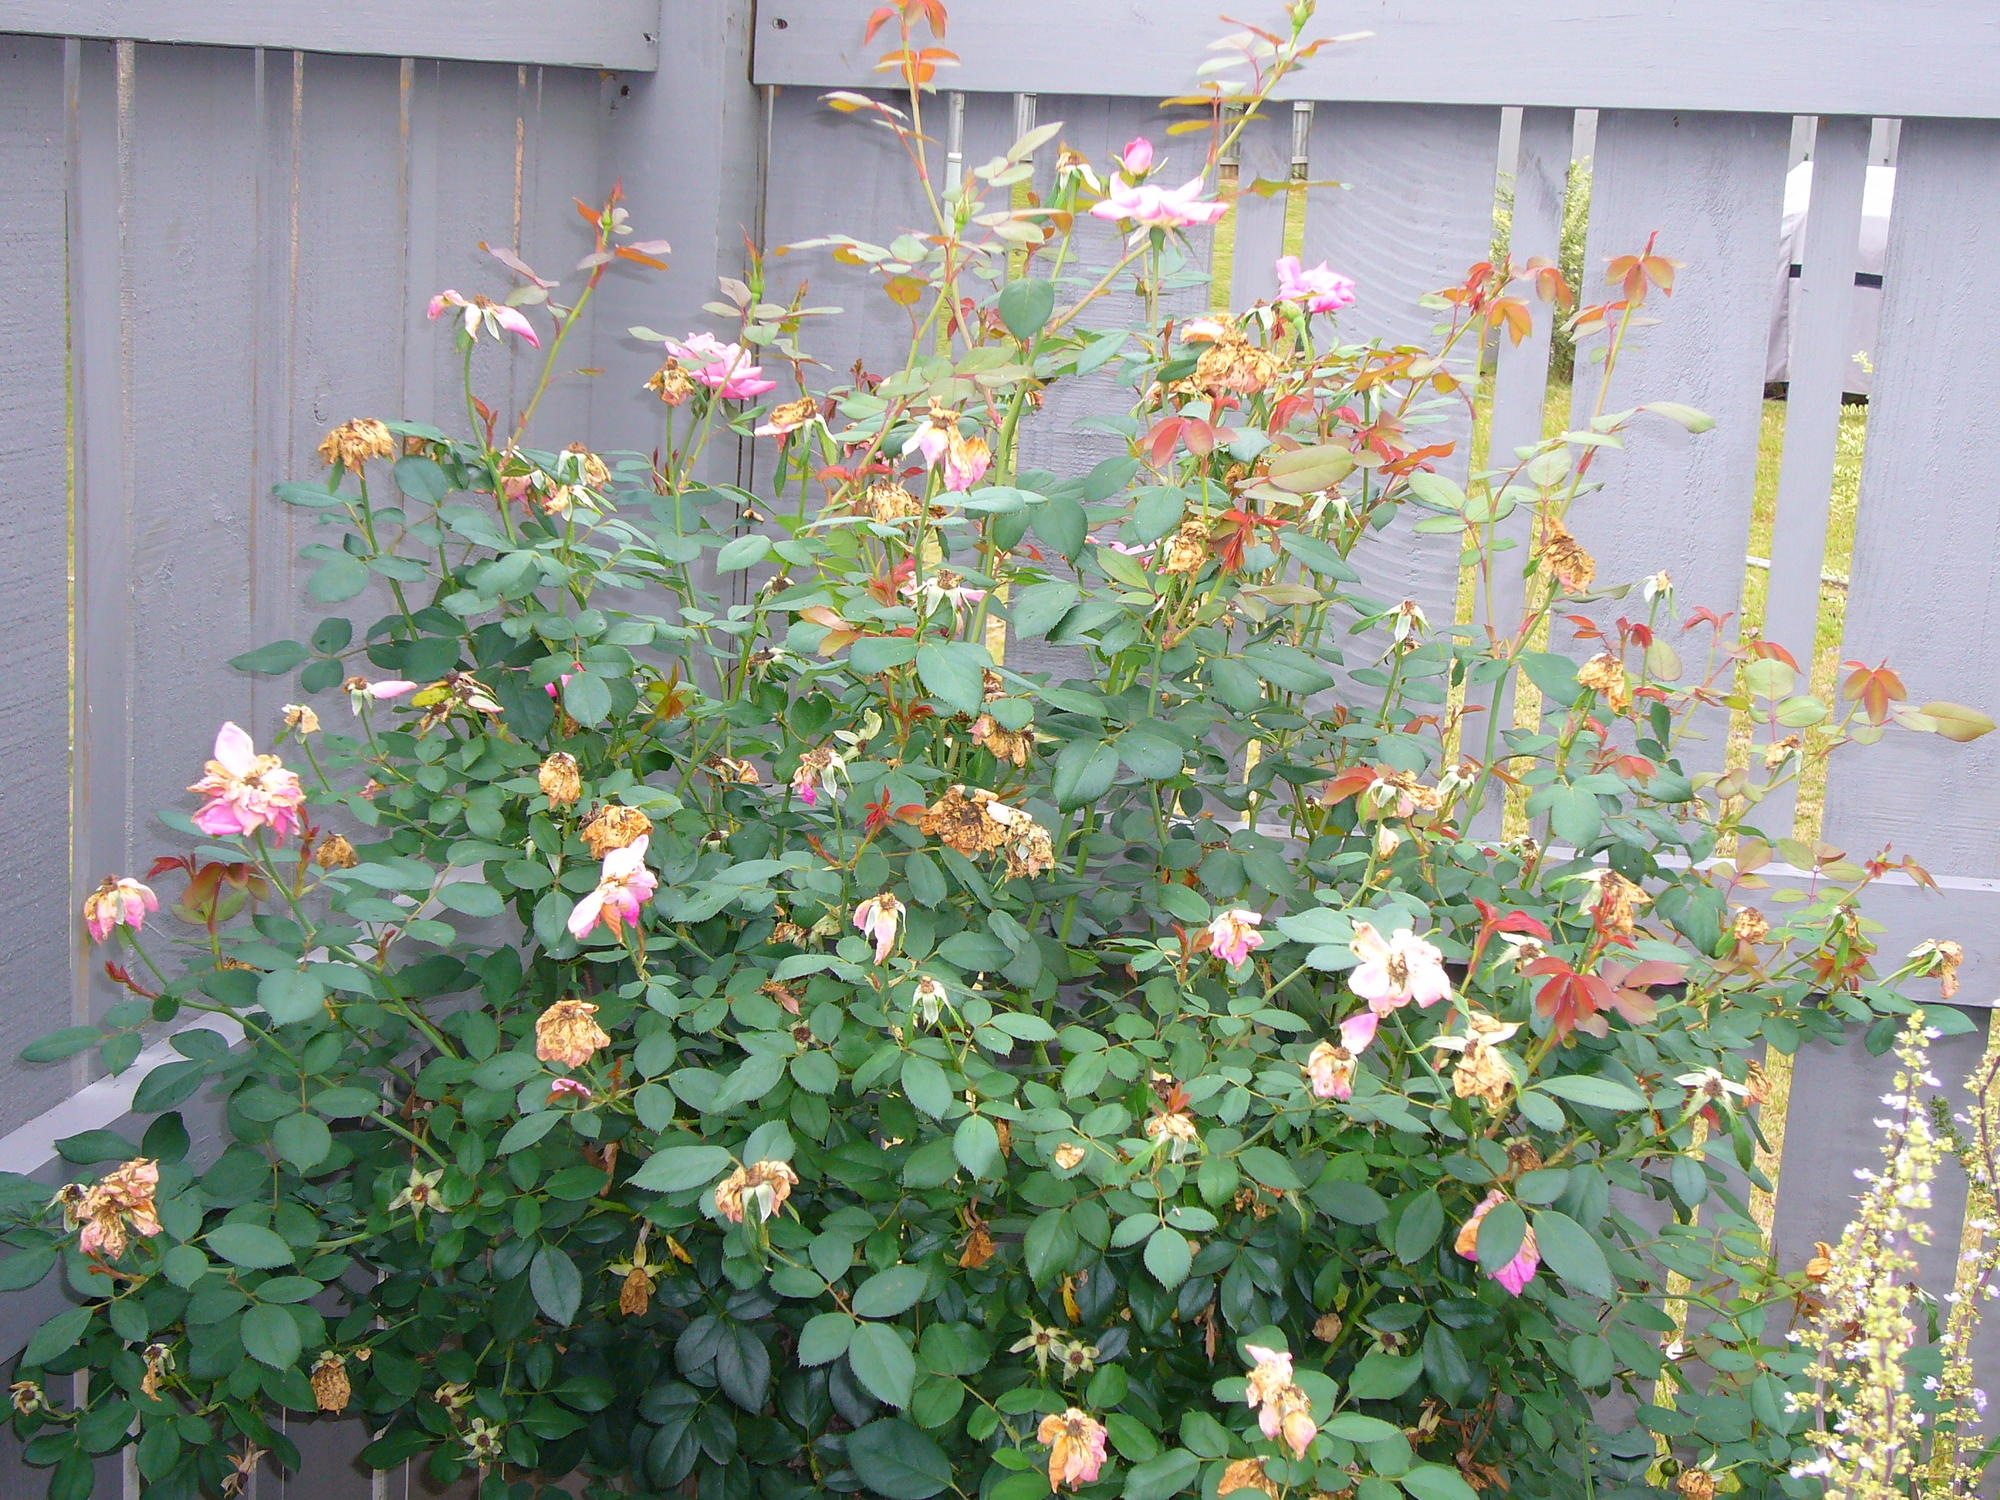 Knock Out Roses Need Tips And When To Prune Them Flower Growing Garden Trees Grass Lawn Flowers Irrigation Landscaping City Data Forum